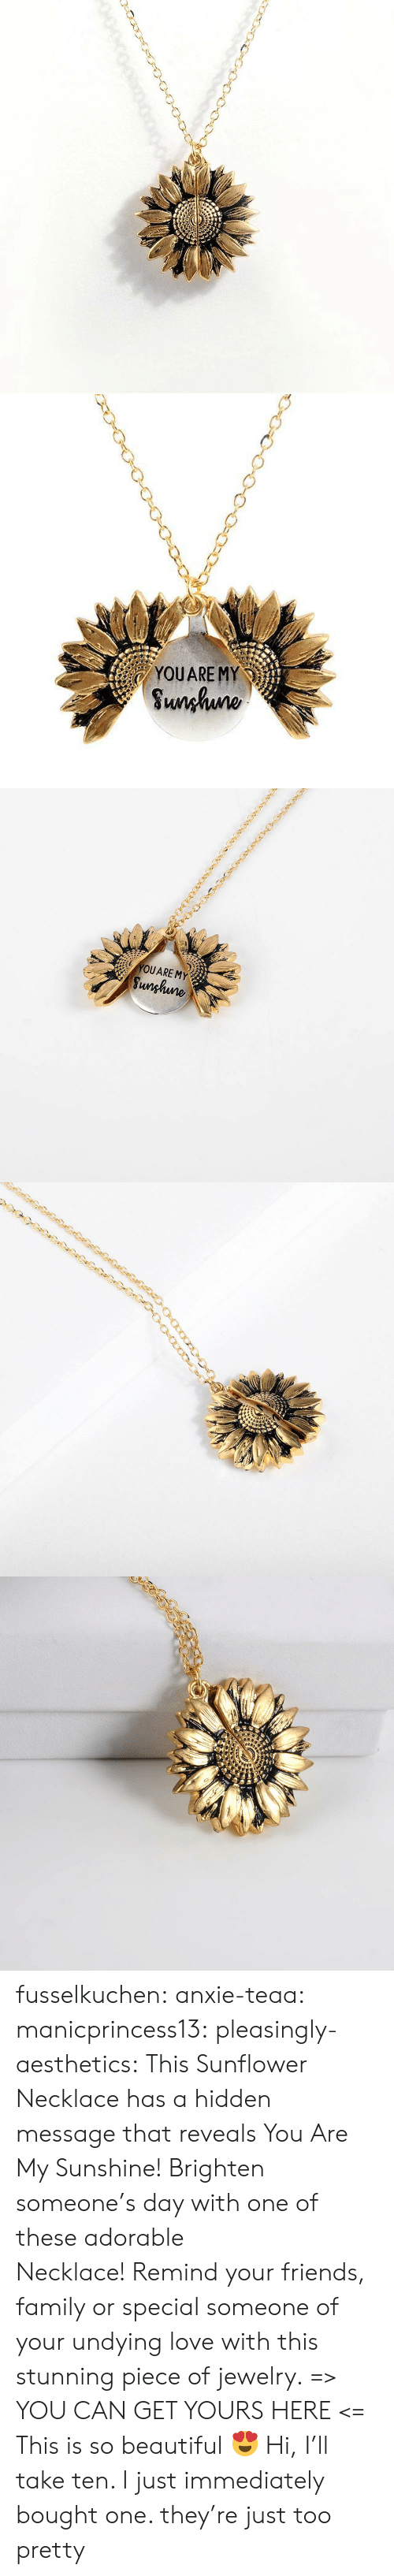 Beautiful, Family, and Friends: YOUARE MY  Sunhuno   YOUARE MY  Sunghune fusselkuchen:  anxie-teaa:  manicprincess13:  pleasingly-aesthetics: This Sunflower Necklace has a hidden message that reveals You Are My Sunshine! Brighten someone's day with one of these adorable Necklace! Remind your friends, family or special someone of your undying love with this stunning piece of jewelry. => YOU CAN GET YOURS HERE <=   This is so beautiful 😍   Hi, I'll take ten.   I just immediately bought one. they're just too pretty